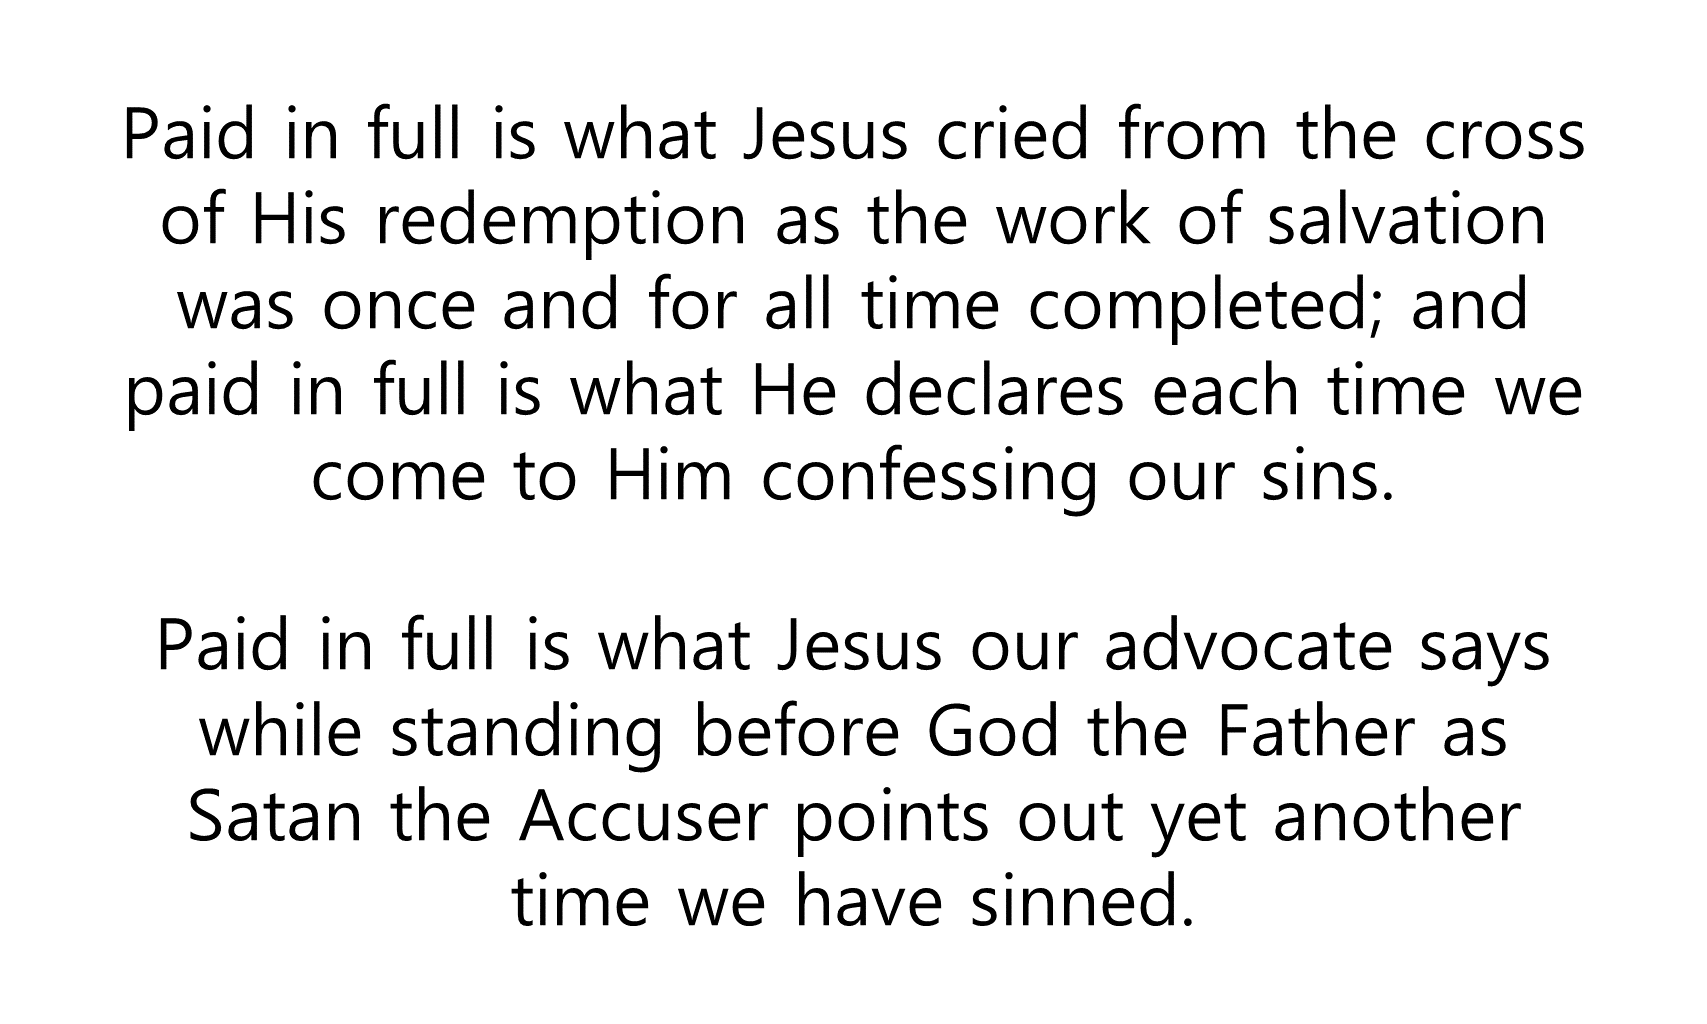 WCC-05 - Worshipping Our Savior Who Redeemed Us (24)